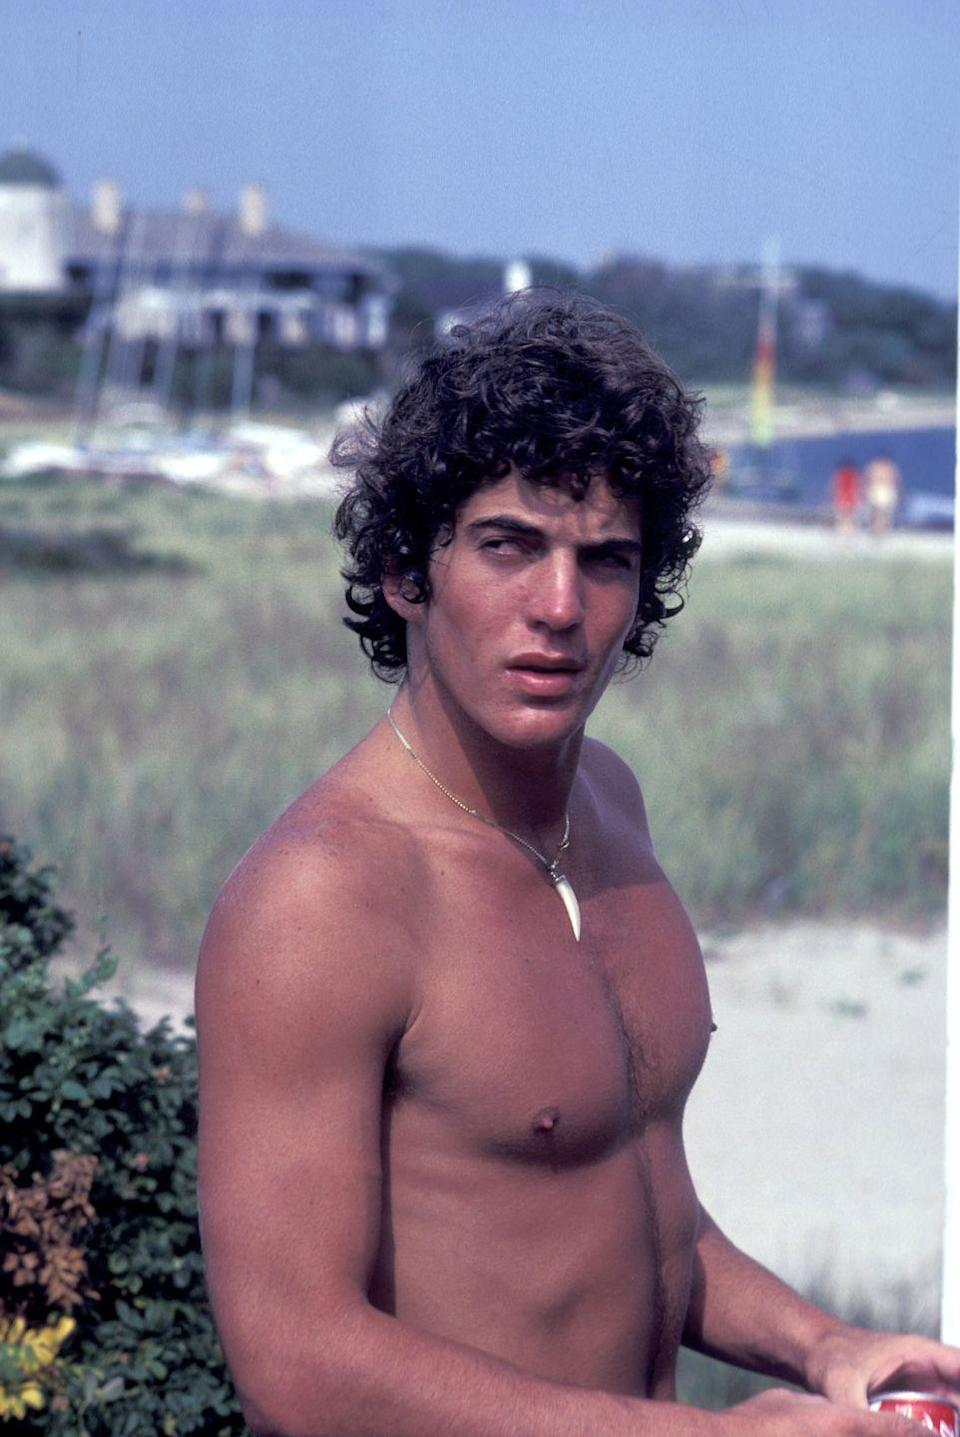 <p>In 1980, Galella captured JFK Jr. spending Labor Day weekend in Hyannis, Massachusetts, where the Kennedy compound is located. <br></p>